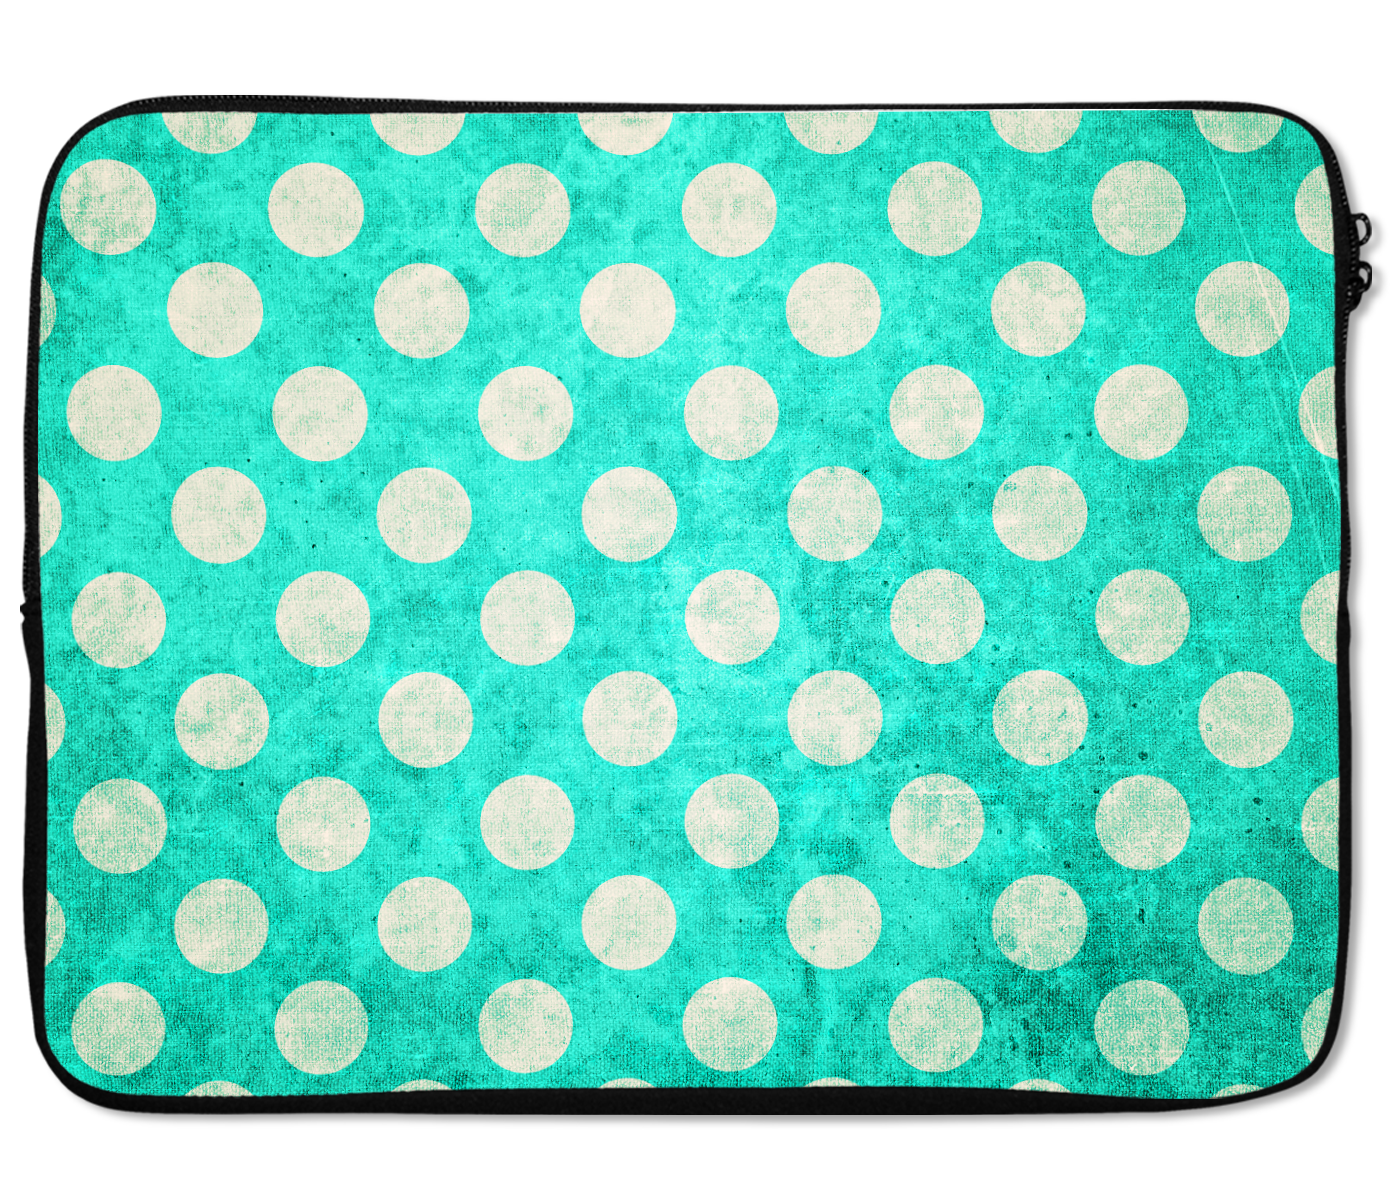 Laptops Tablet Sleeves Vintage Neon Tropical Green Polka Dot Pattern Premium Quality Neoprene Laptop Protection